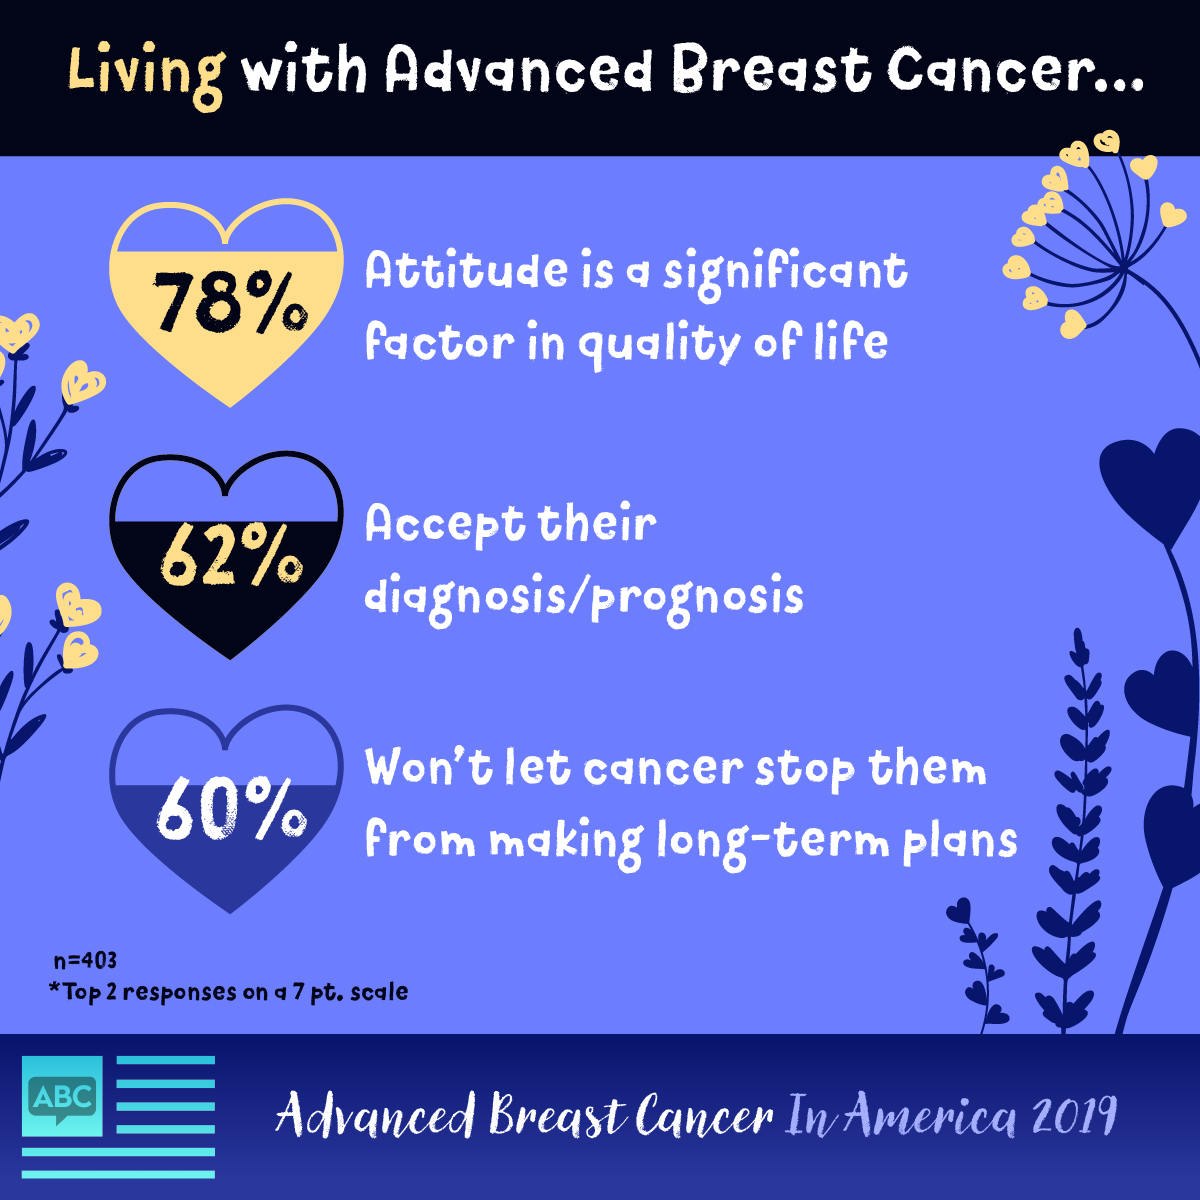 A positive attitude, accepting the diagnosis & making longer-term plans helped those with advanced breast cancer cope.